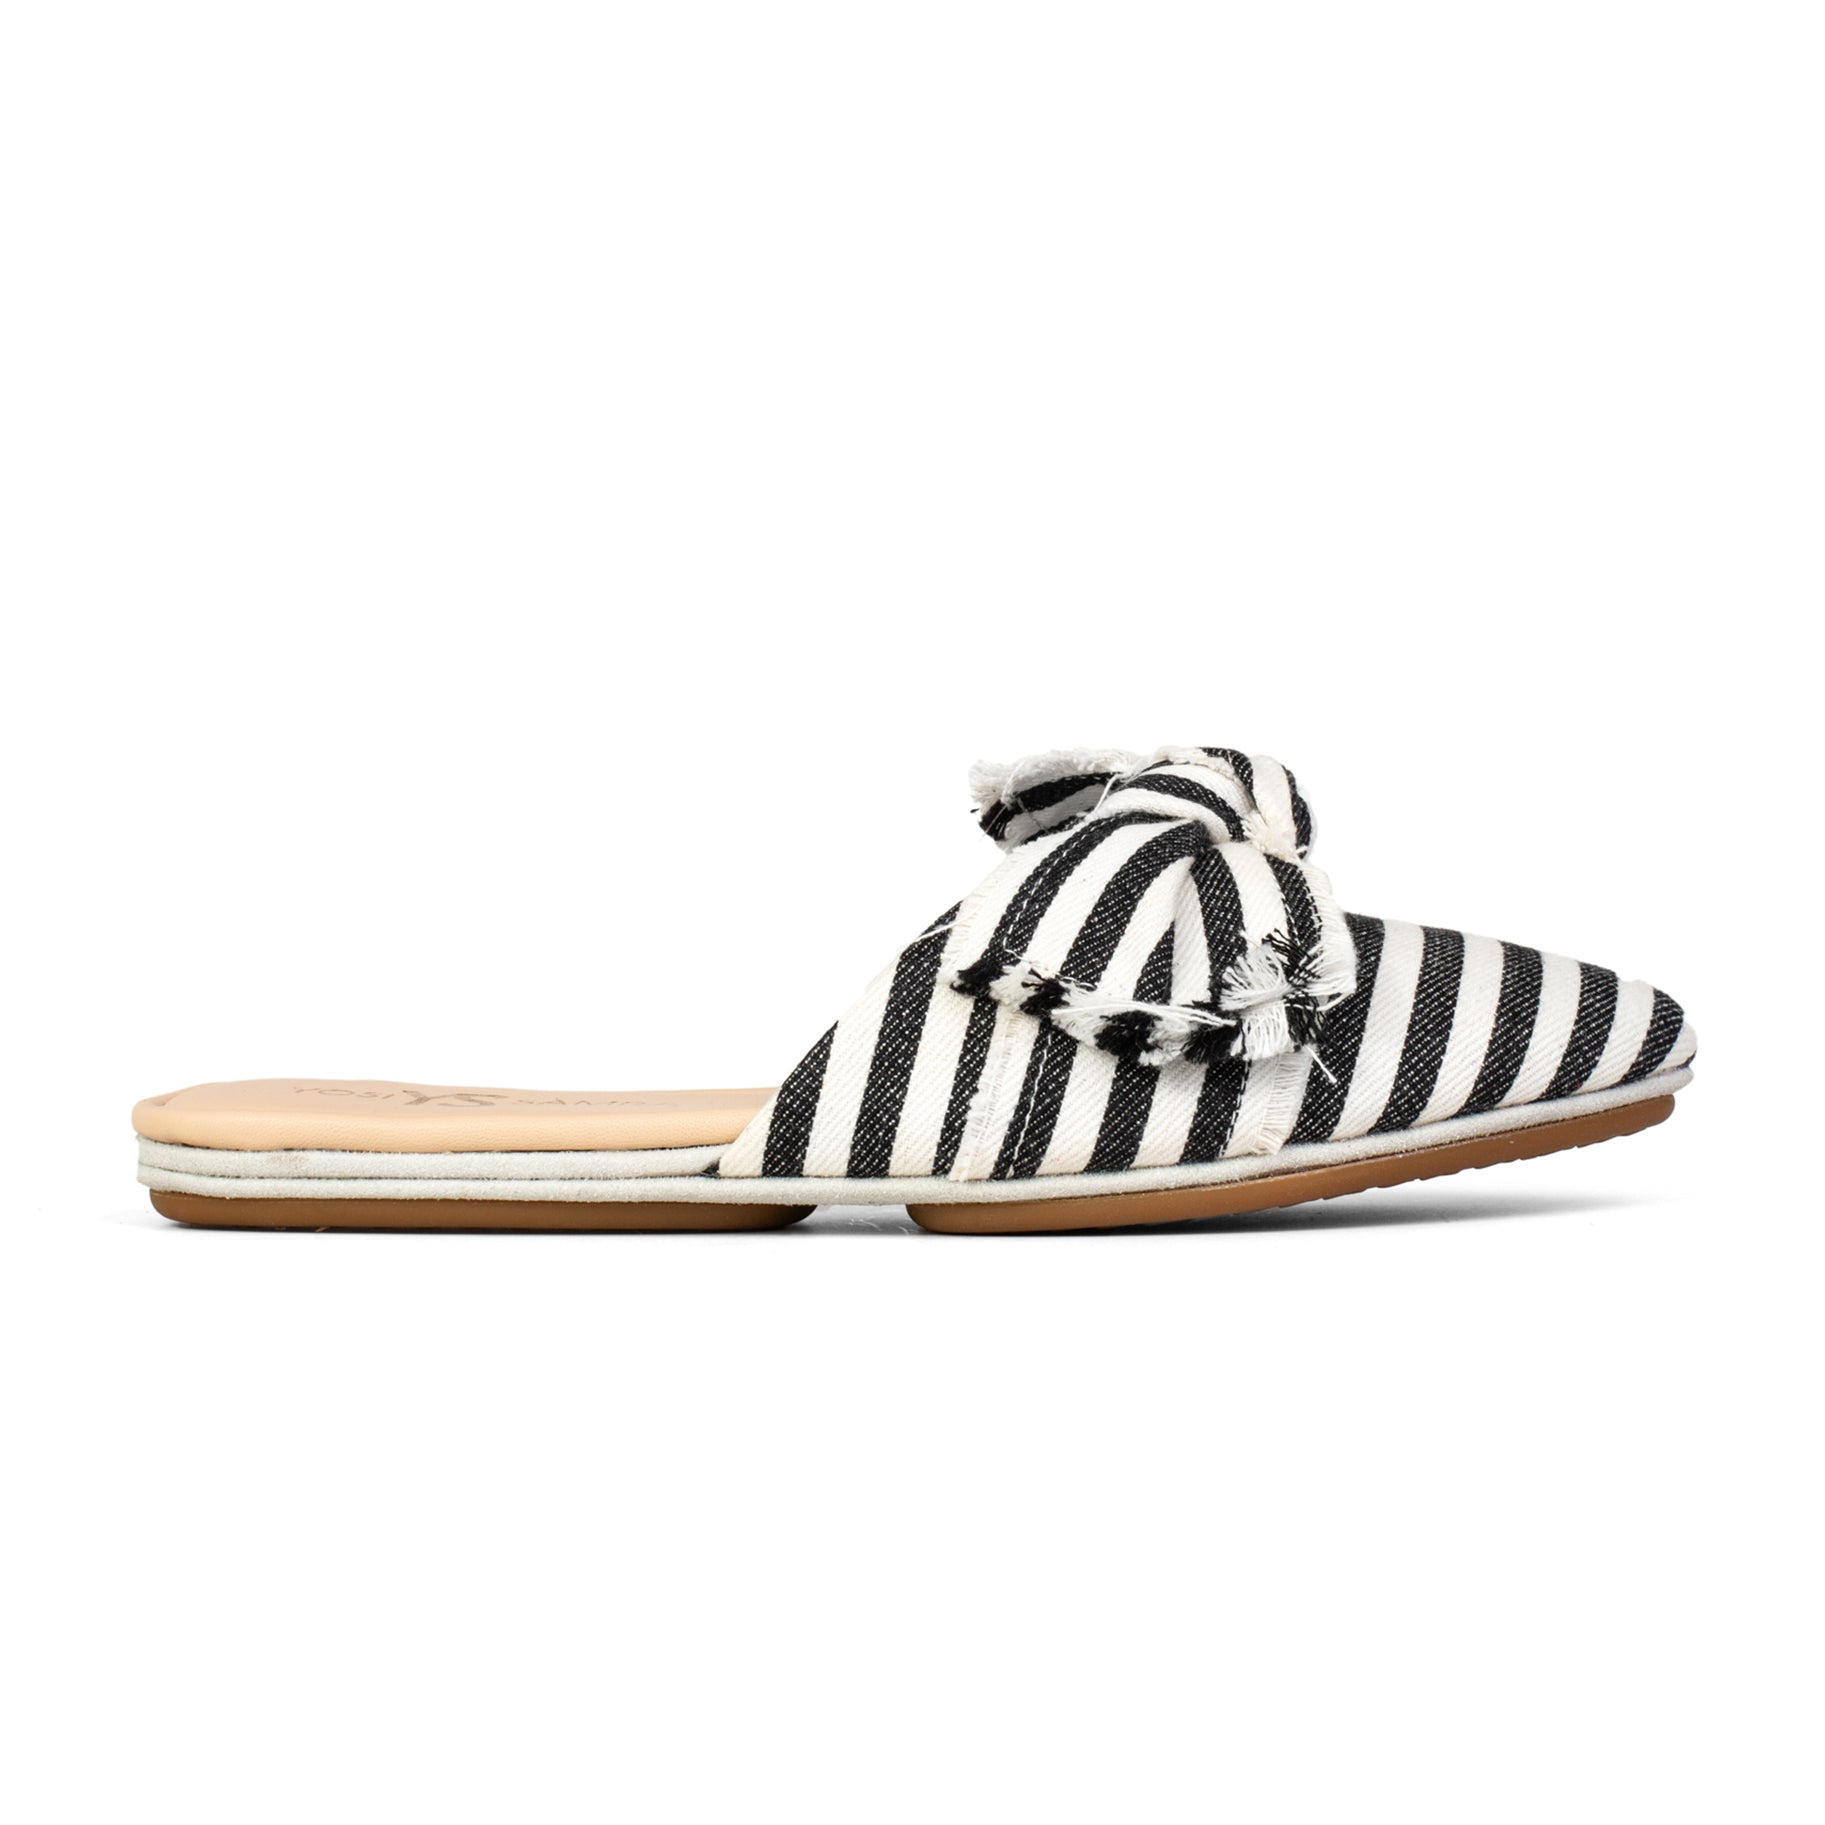 Viceroy Black Natural Woven Stripe Slide